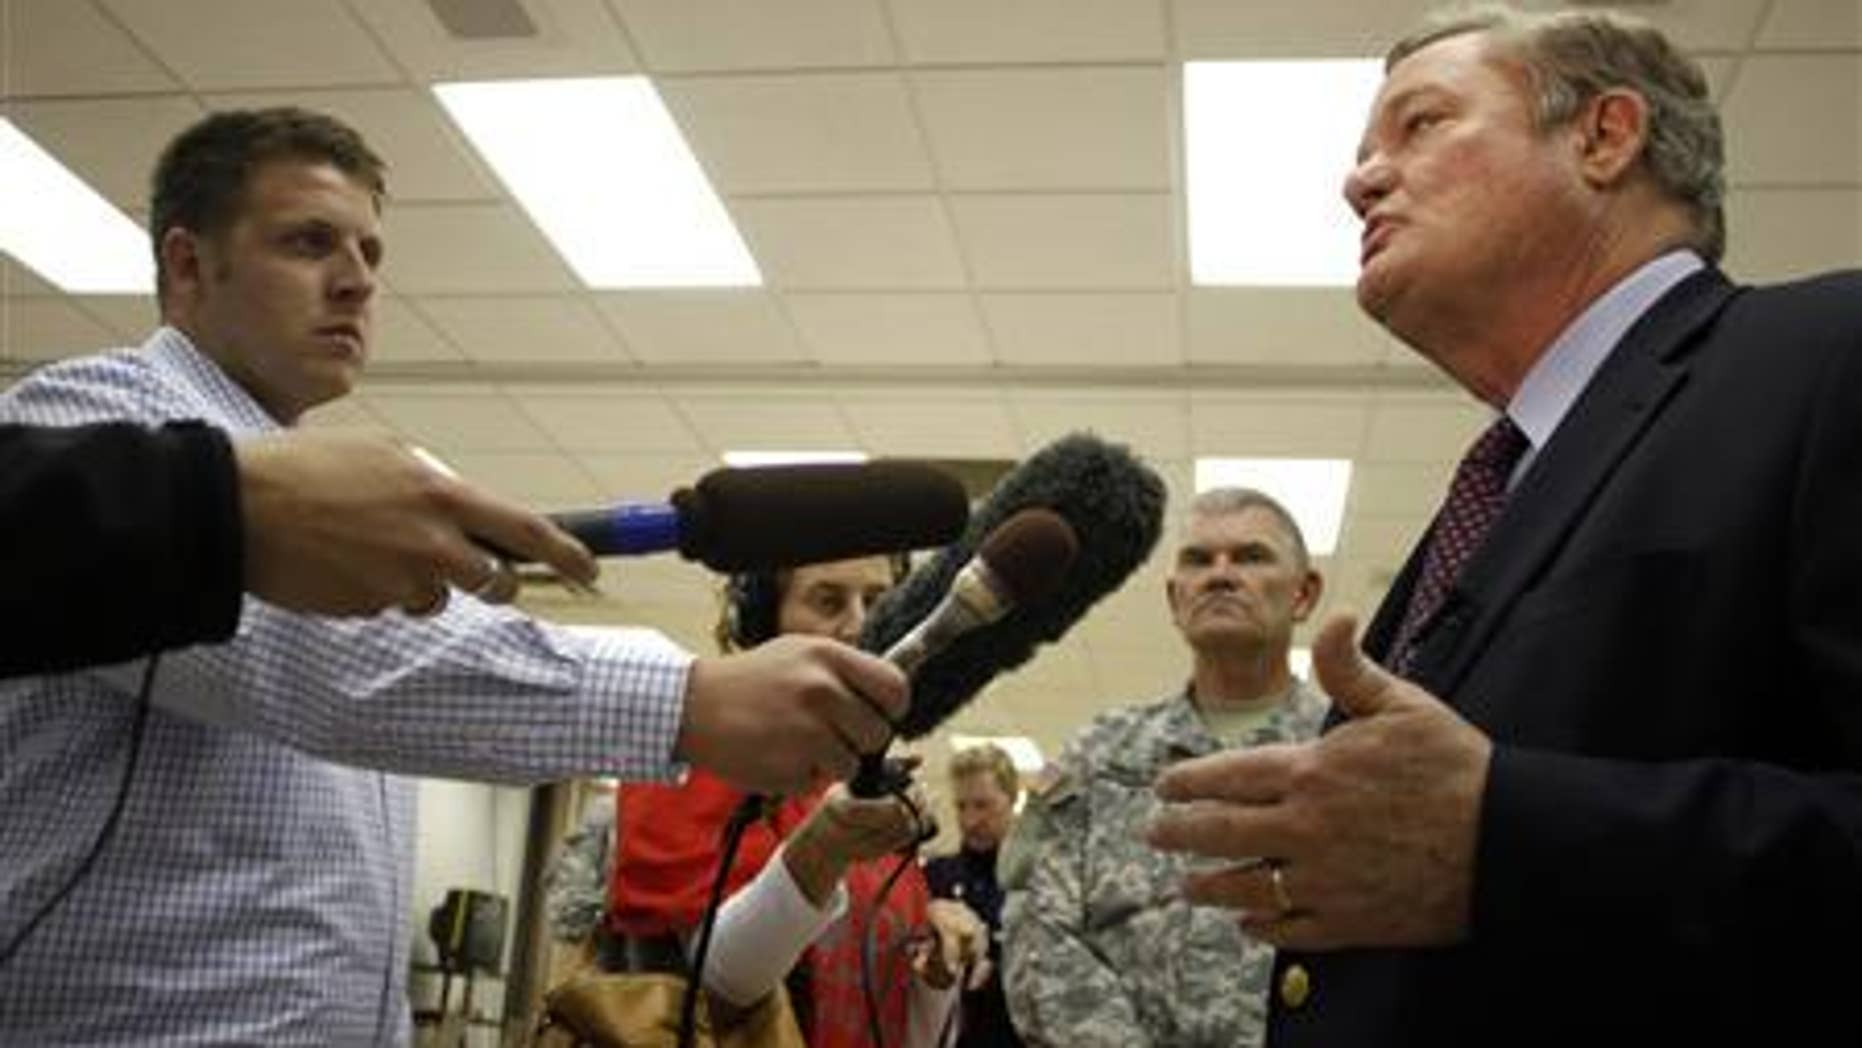 North Dakota Governor Jack Dalrymple (R) speaks with the media at the FEMA Disaster Recovery Center in Minot, North Dakota, June 27, 2011. REUTERS/Allen Fredrickson